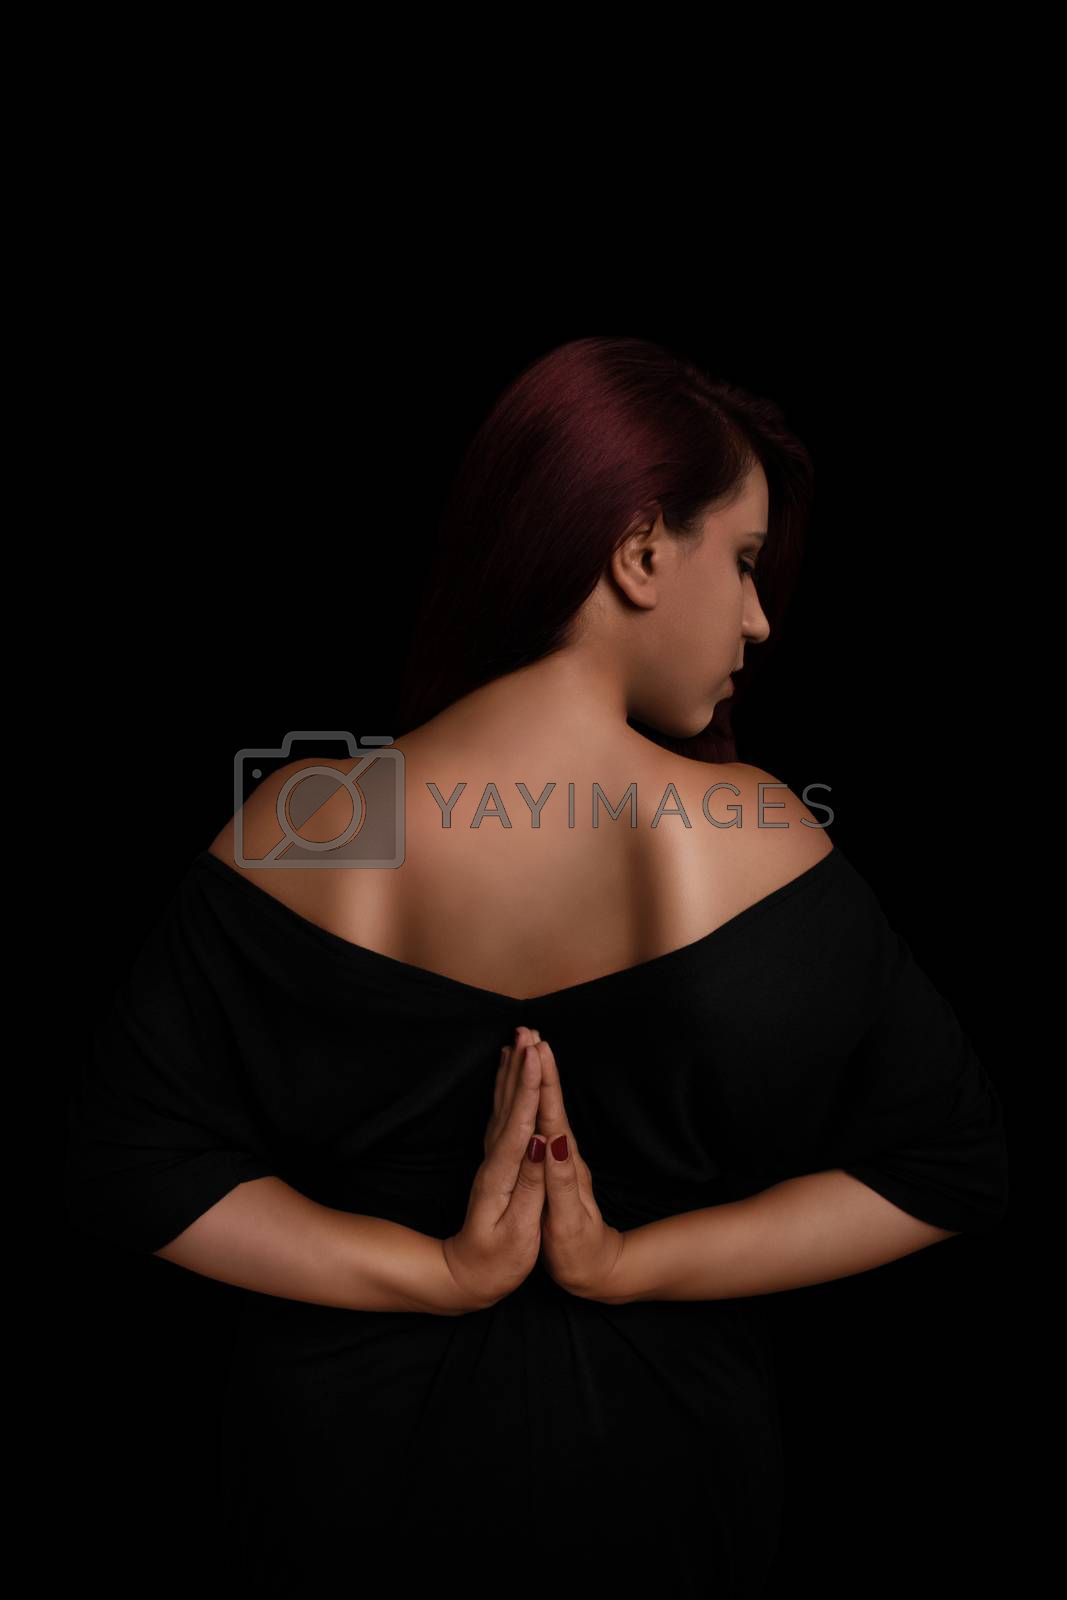 Low key portrait of a young girl in black dress with her hands behind her back, practicing yoga isolated on black background.